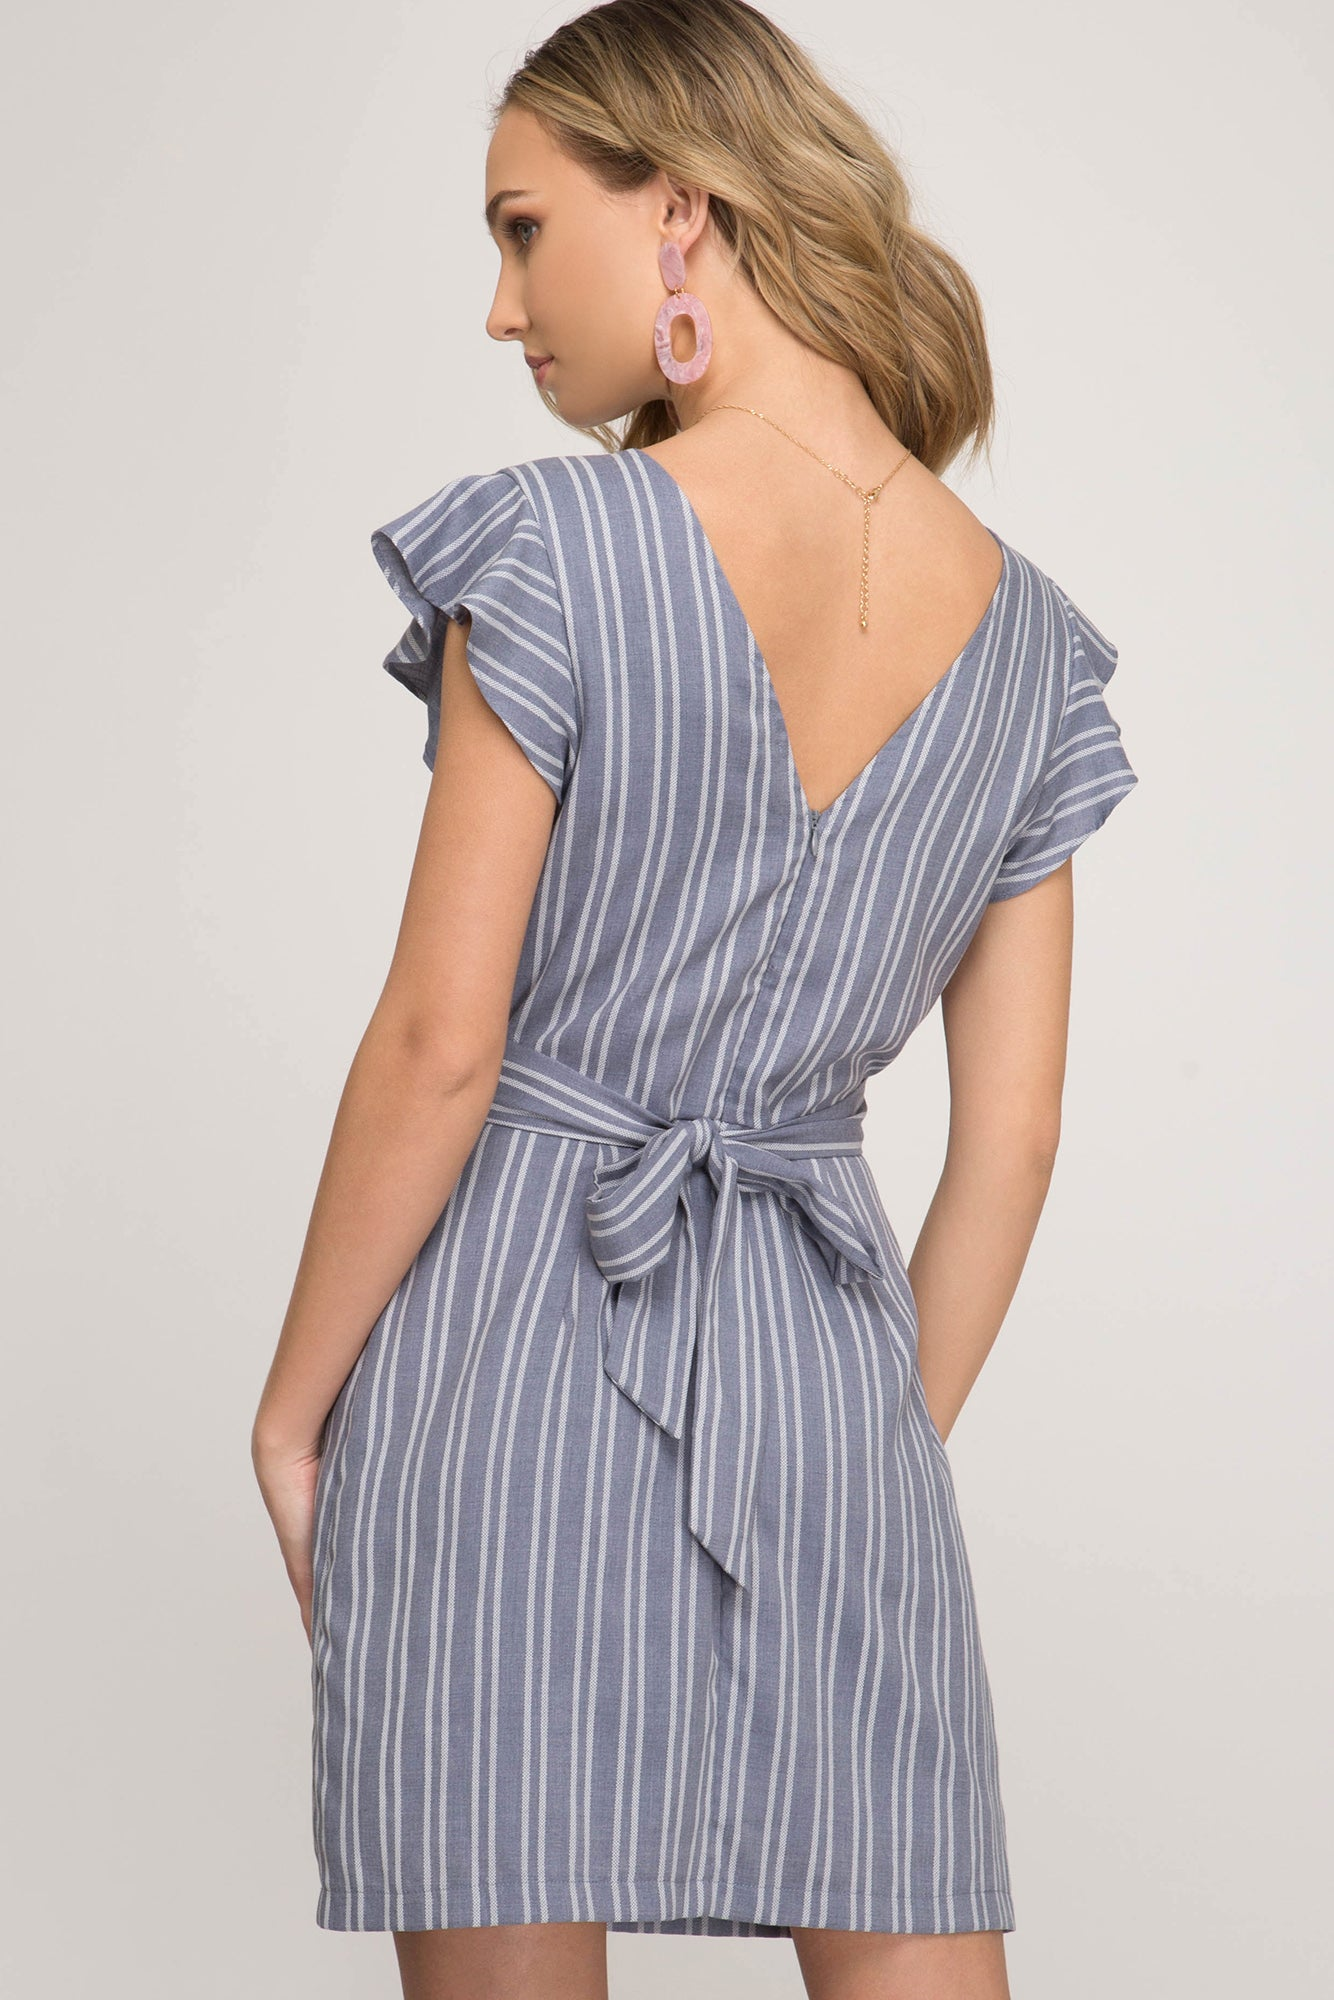 The Striped Sacramento Dress